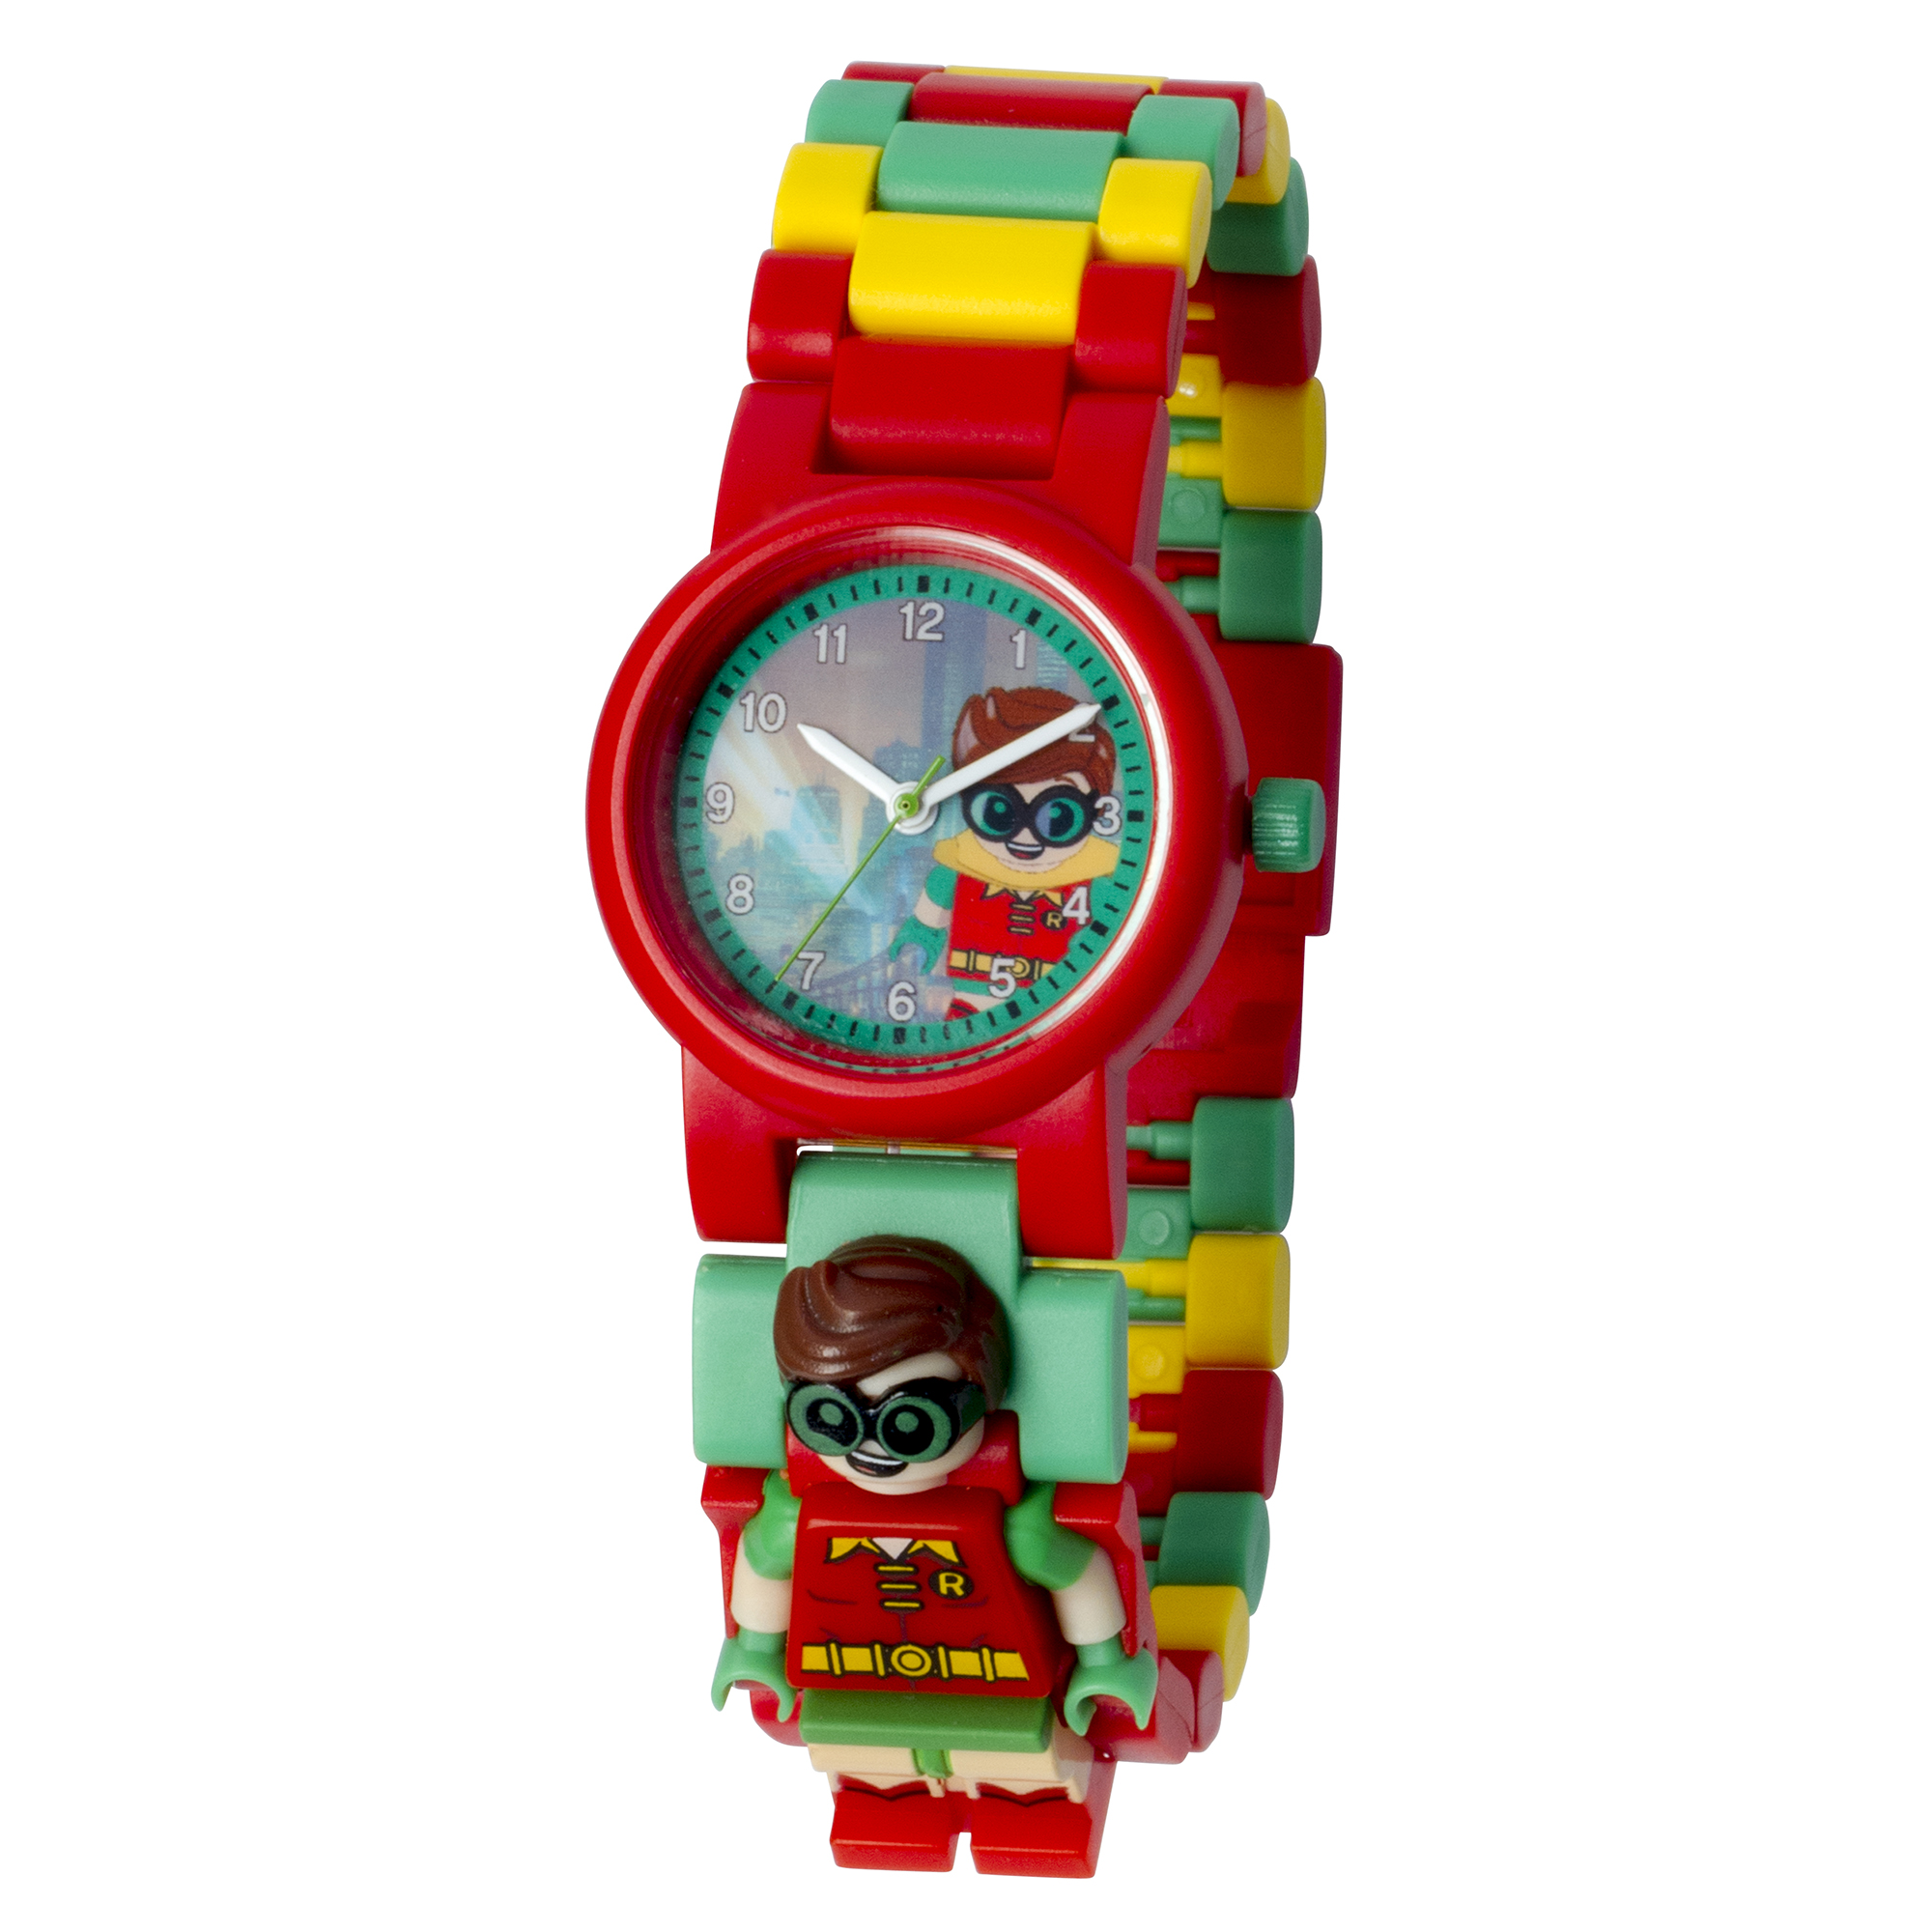 LEGO Batman Movie Robin Minifigure Link Watch